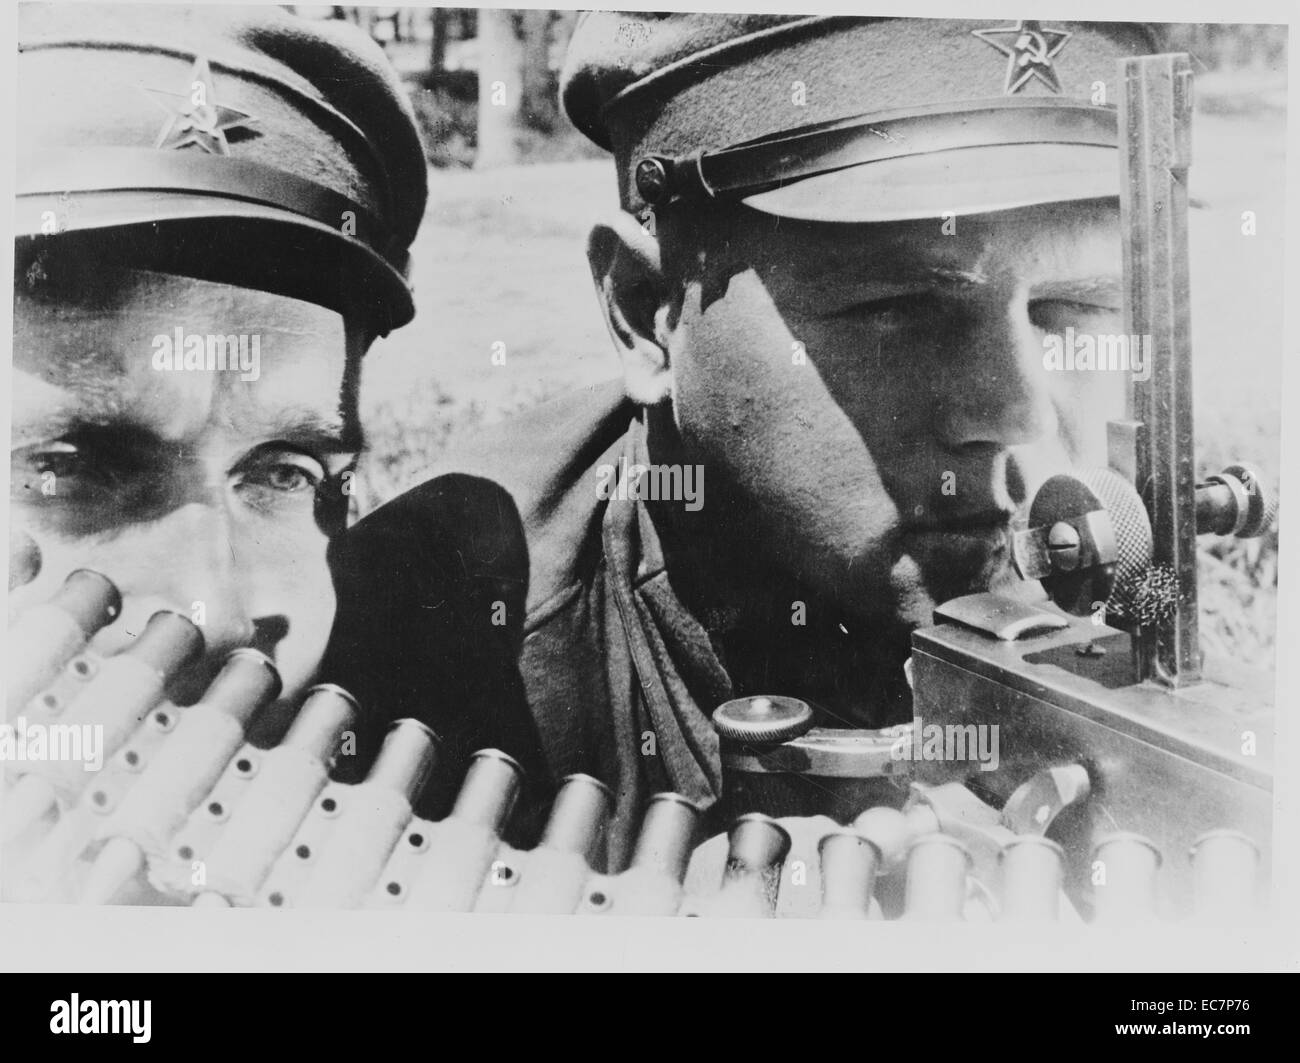 Machine gunners of the far eastern Red Army in the USSR (Union of Soviet Socialist Republics) World War II - Stock Image